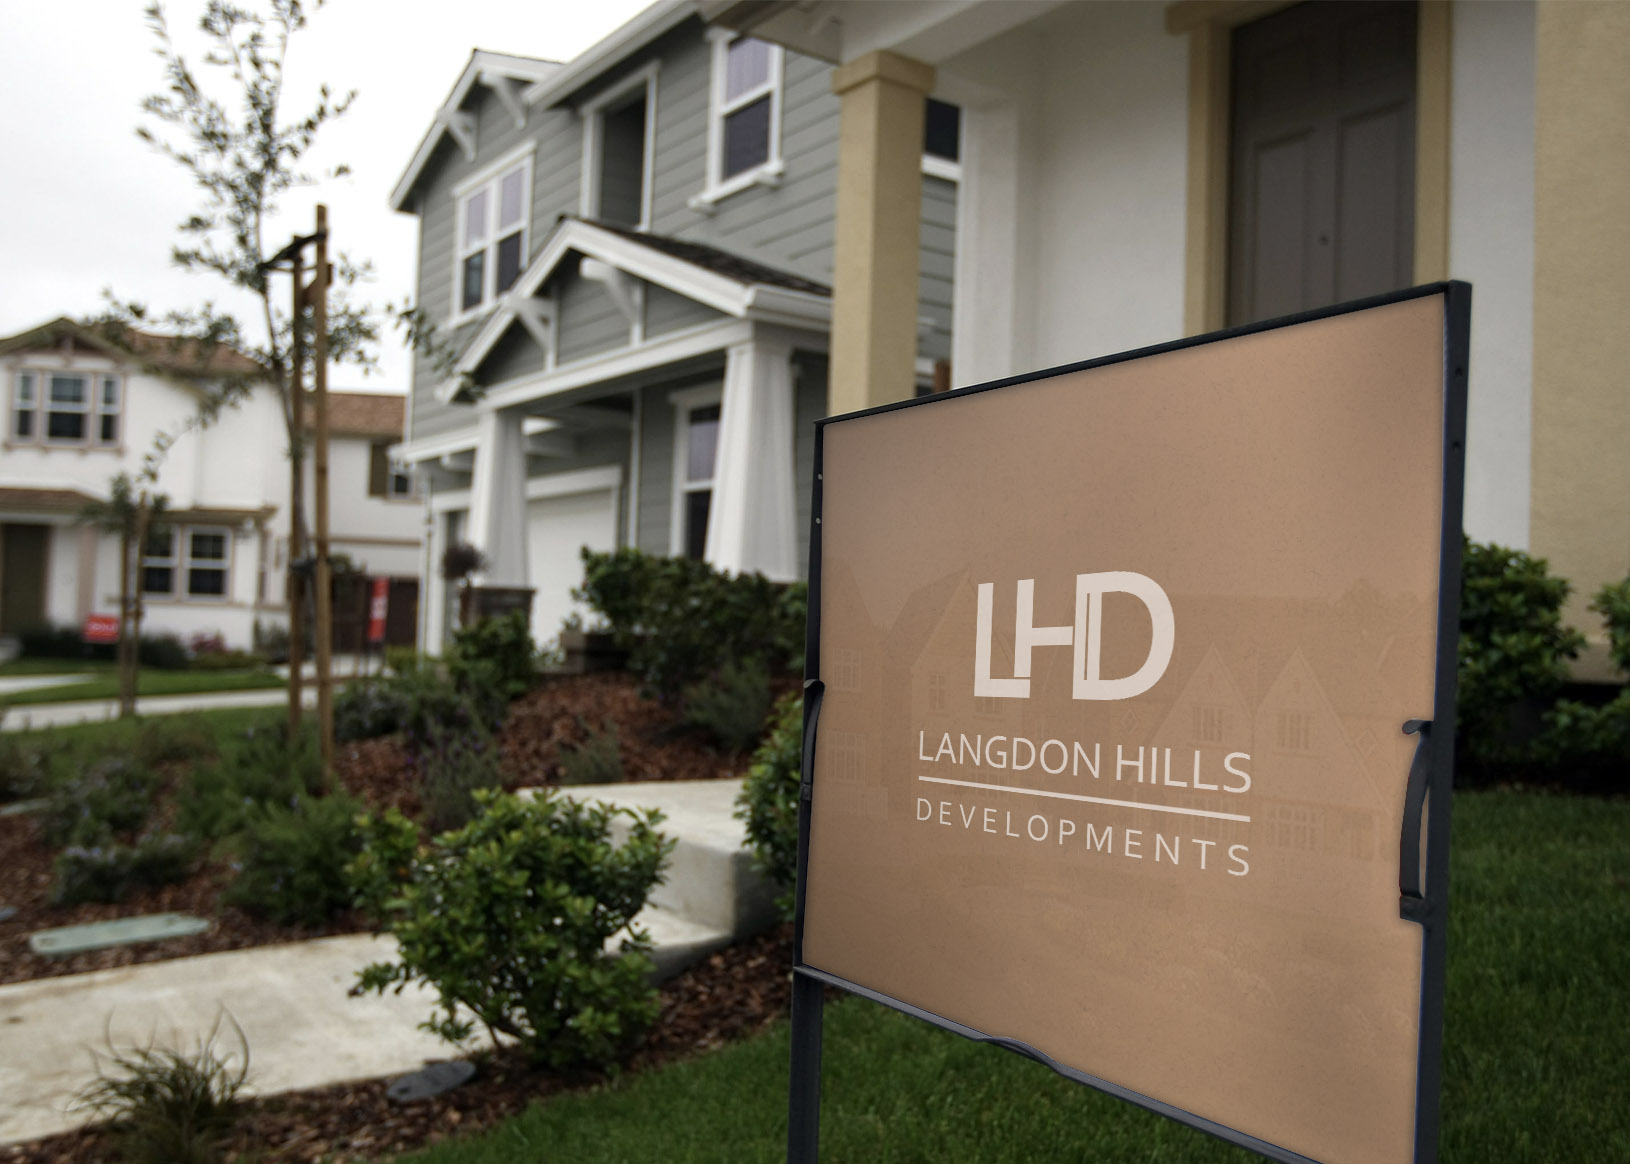 Langdon Hills Development - Signage